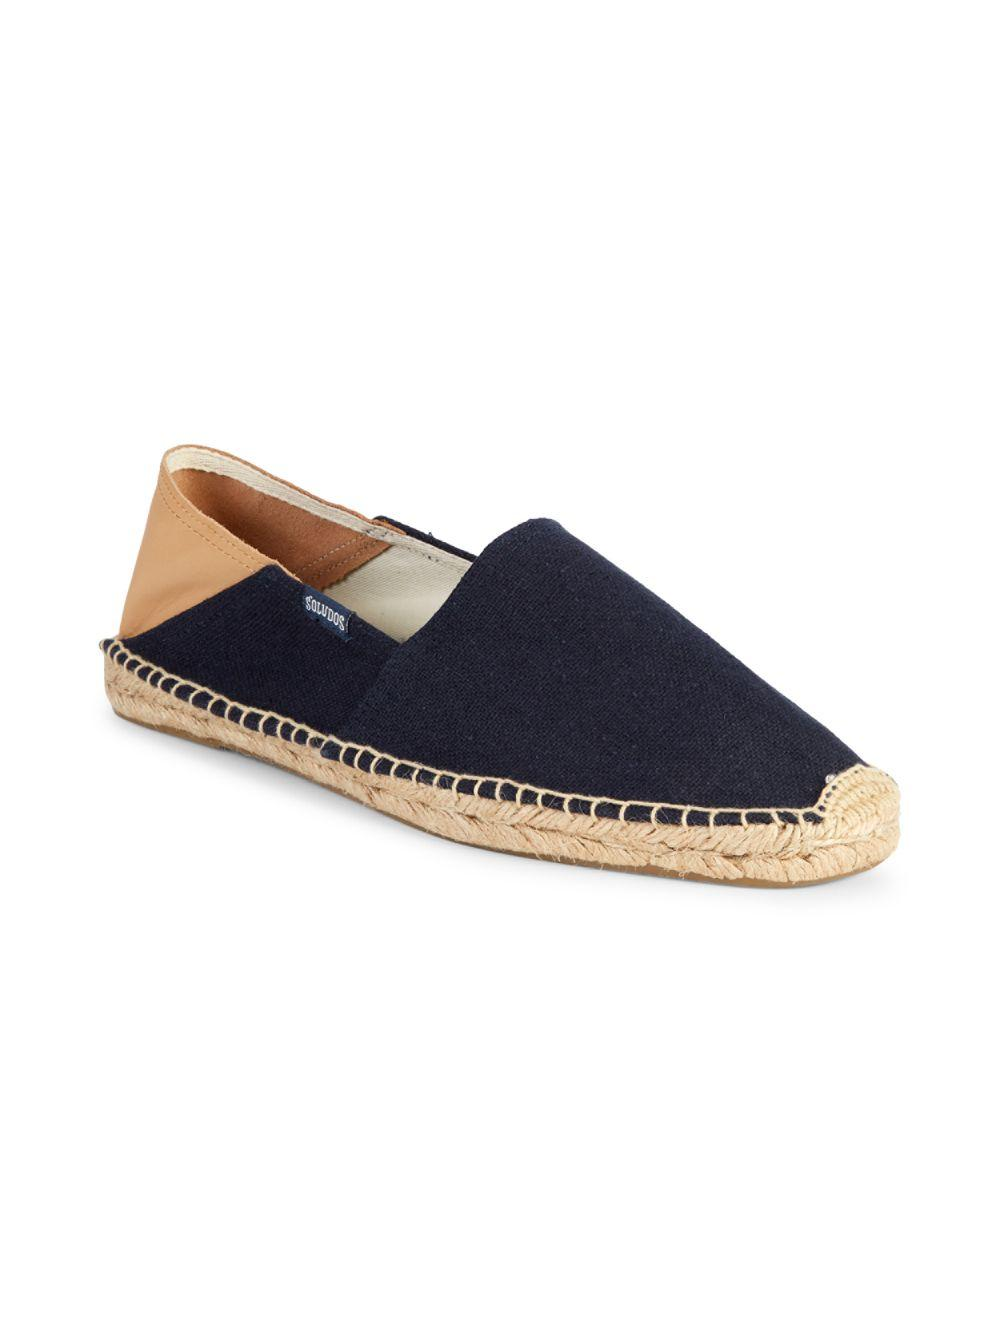 65ed43e27 Lyst - Soludos Collapsible Heel Convertible Espadrille Flats in Blue for Men